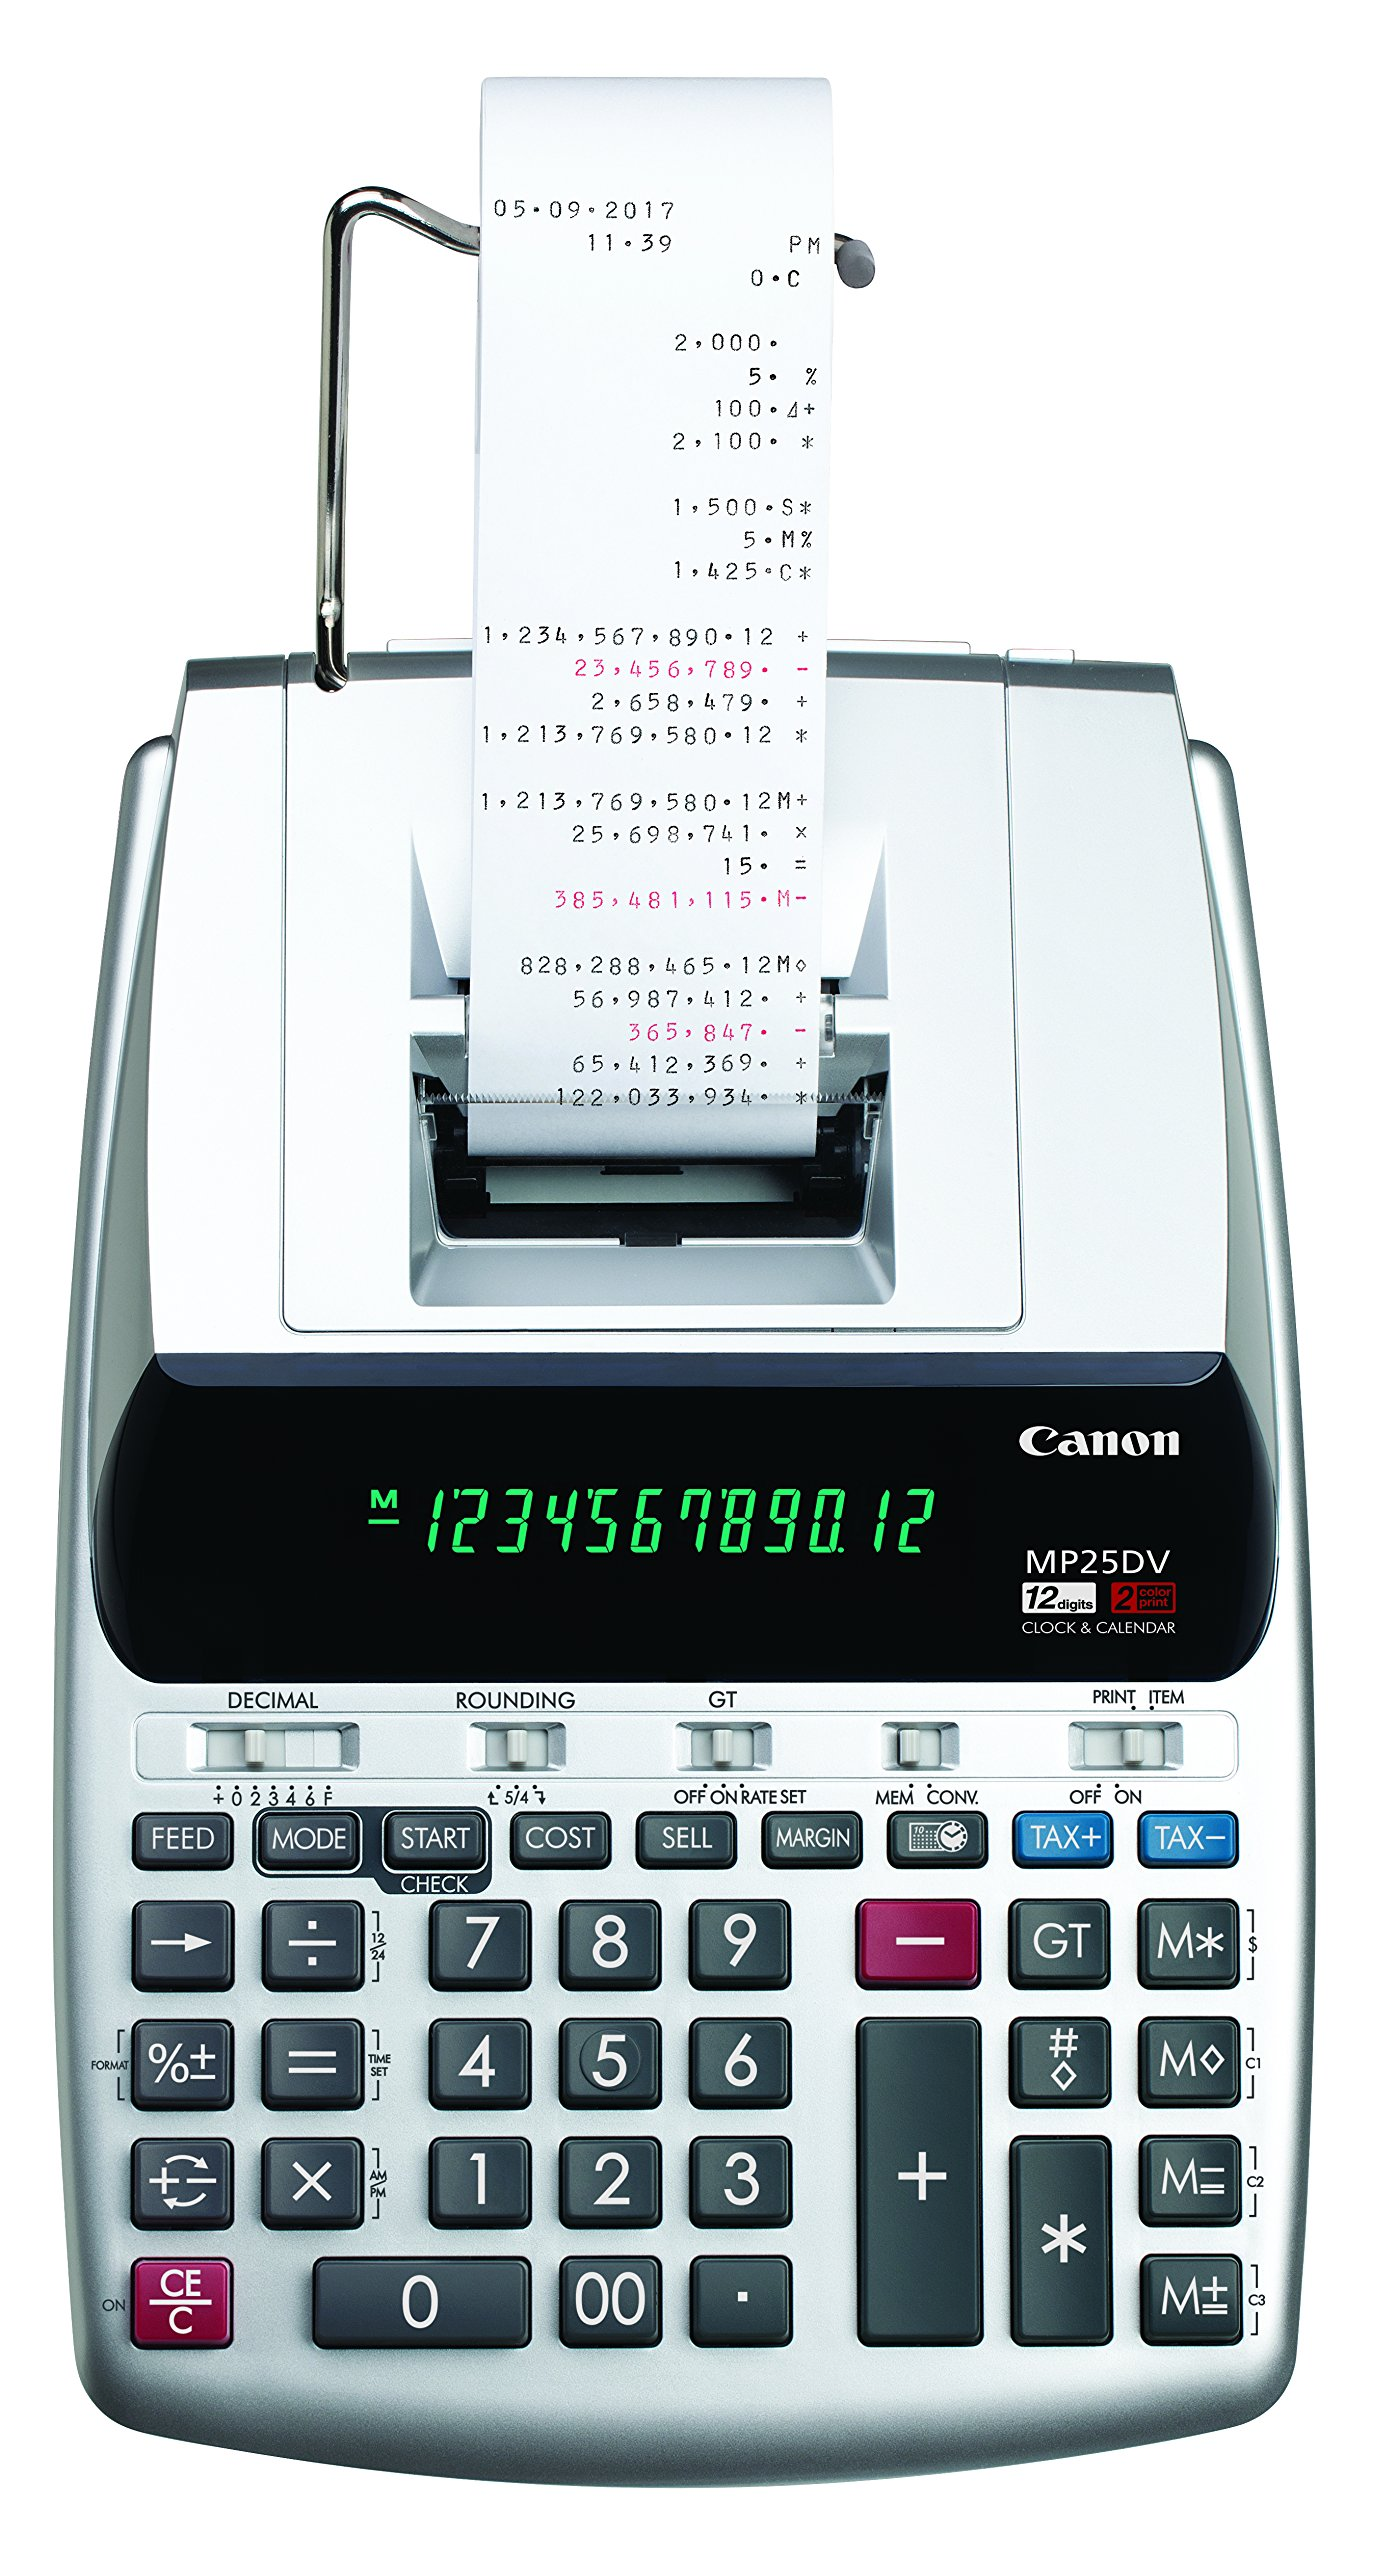 Canon Office Products 2202C001 Canon MP25DV-3 Desktop Printing Calculator with Currency Conversion, Clock & Calendar by Canon